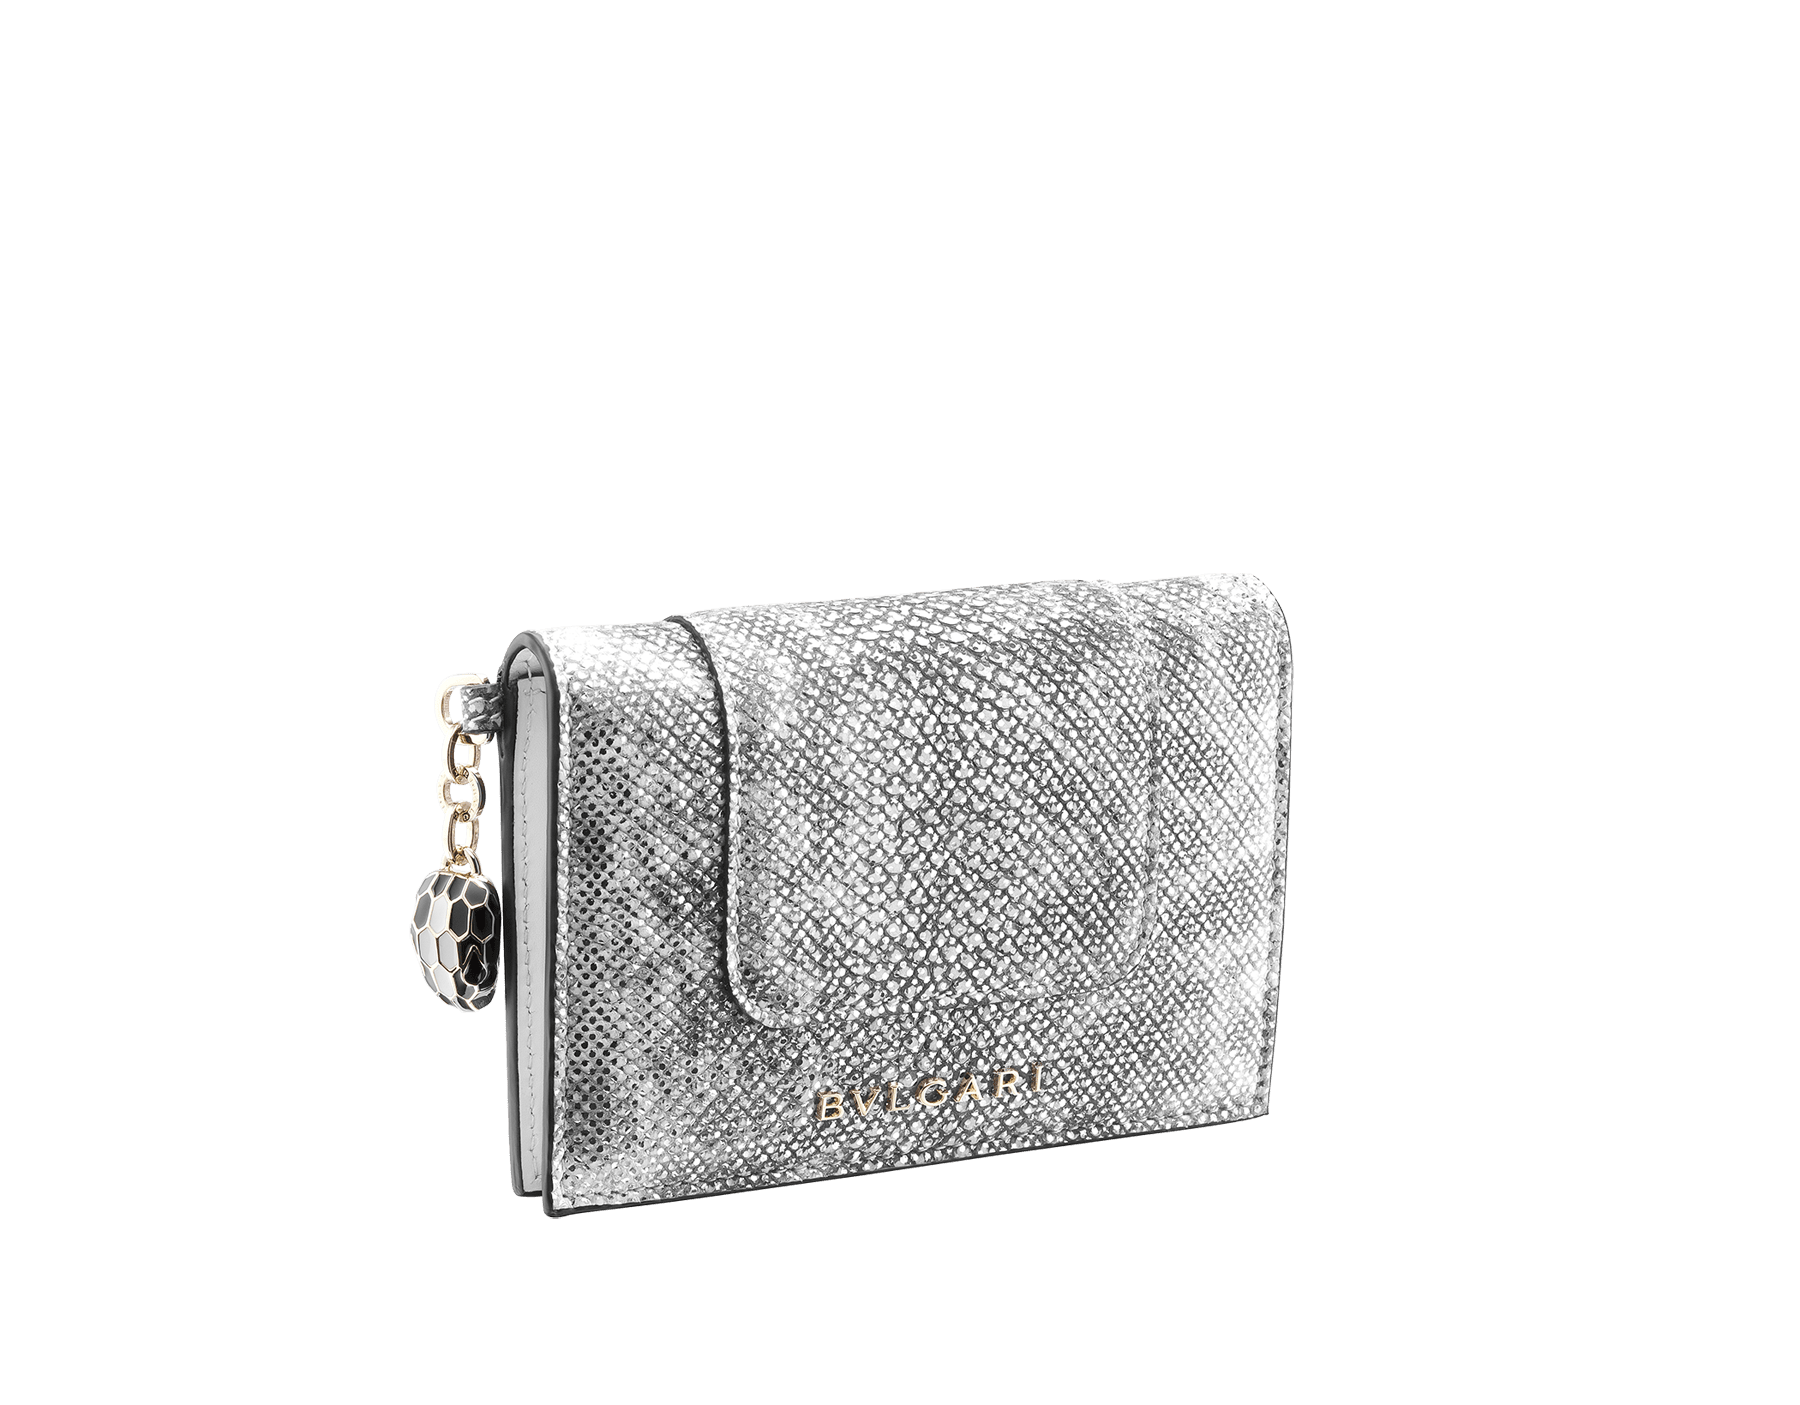 """""""Serpenti Forever"""" folded card holder in white agate metallic karung skin and white agate calf leather. Iconic snakehead charm in black and white agate enamel with black enamel eyes. 289308 image 1"""